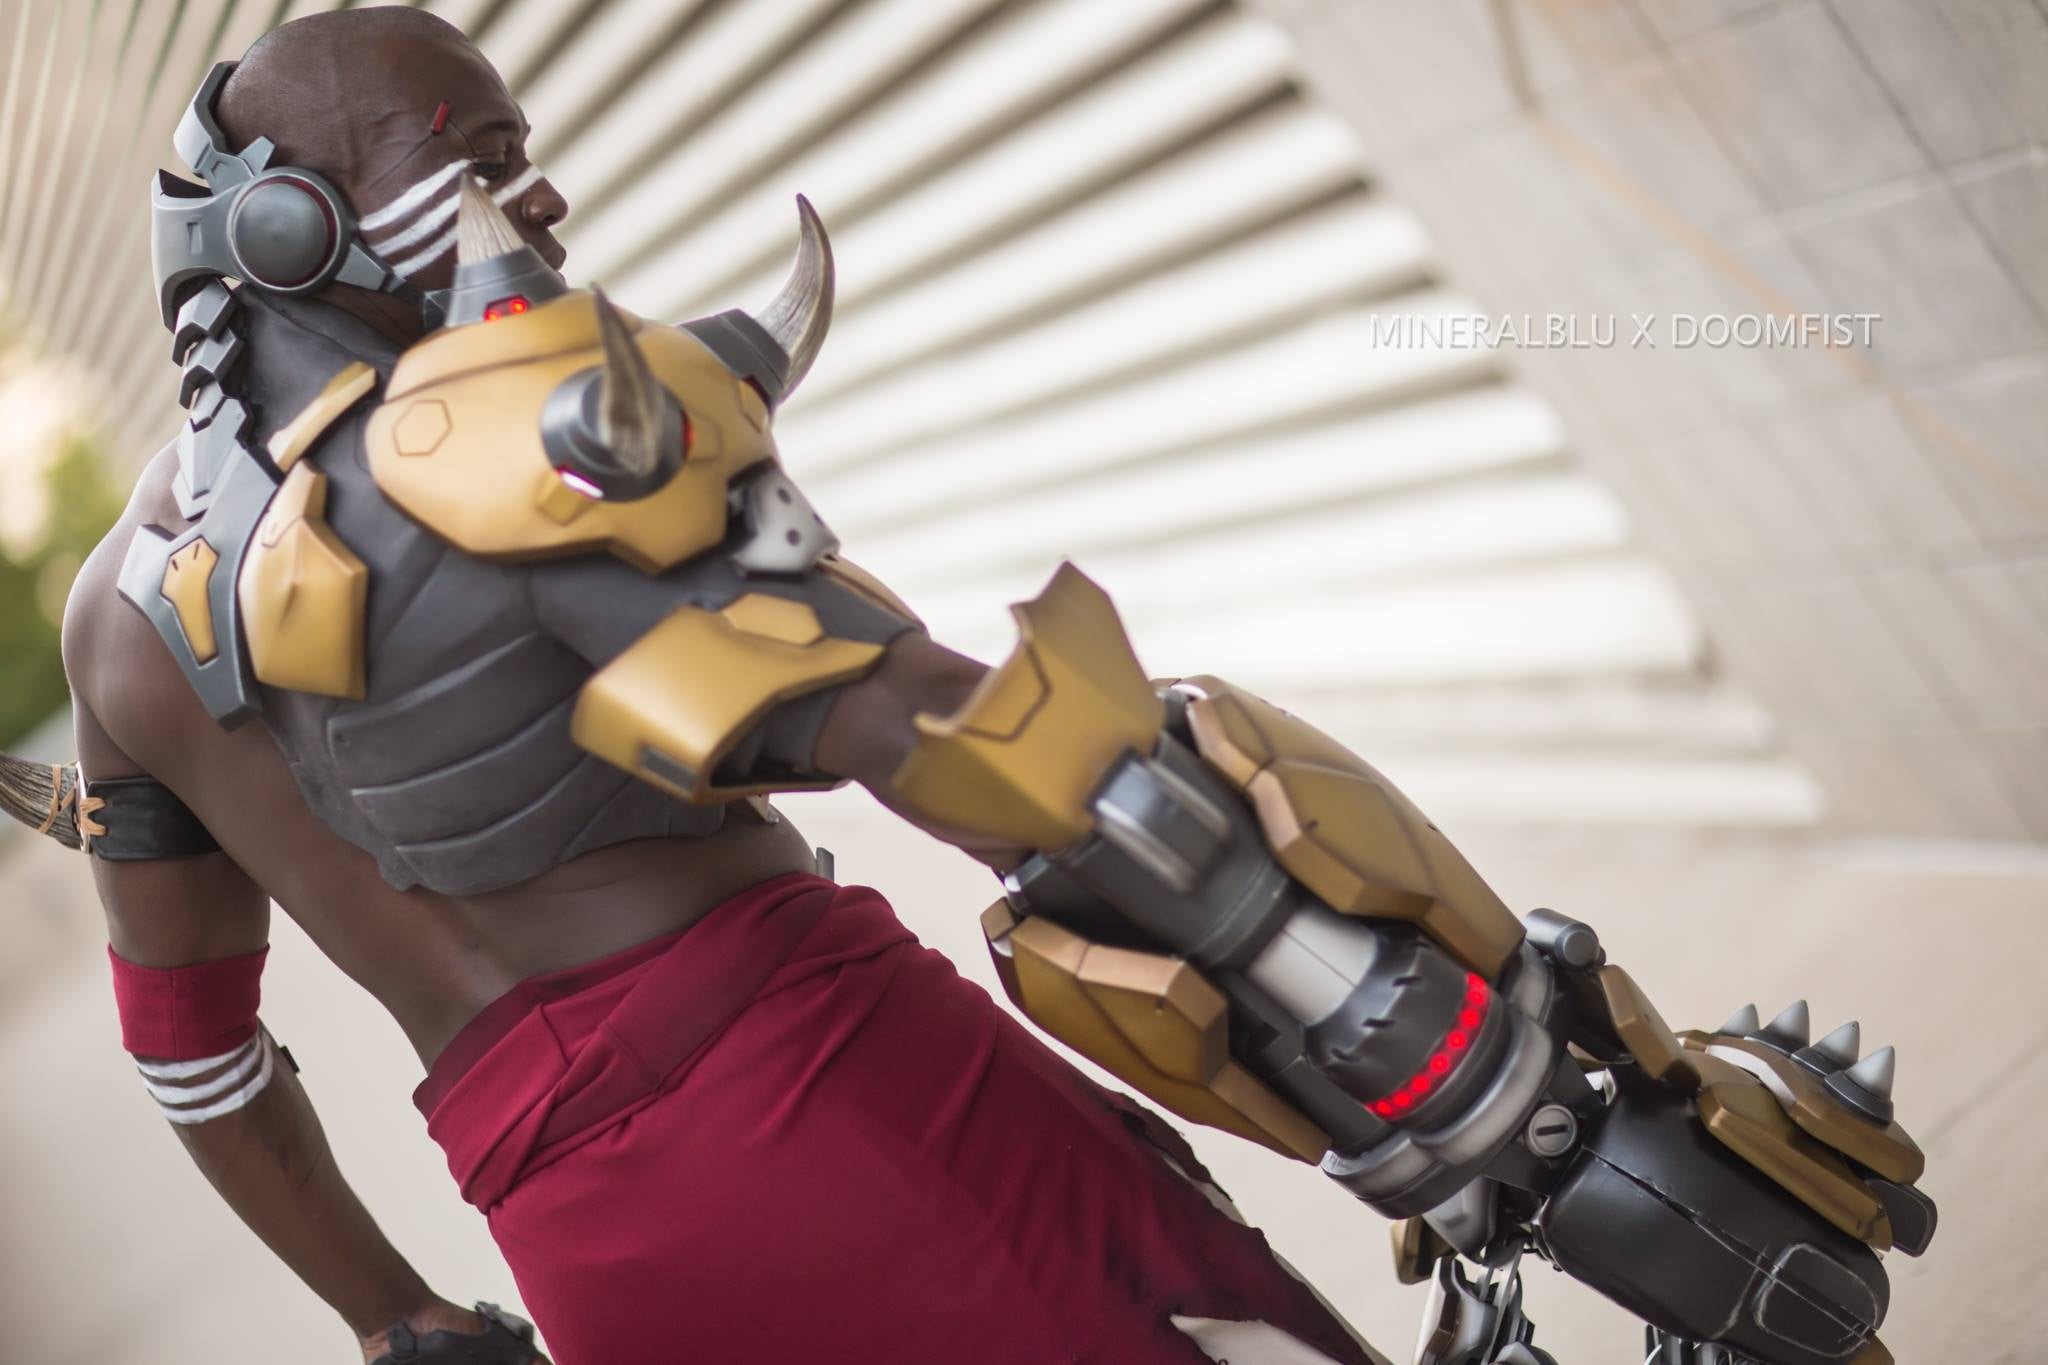 Blizzard's Official Doomfist Cosplay Is Incredible